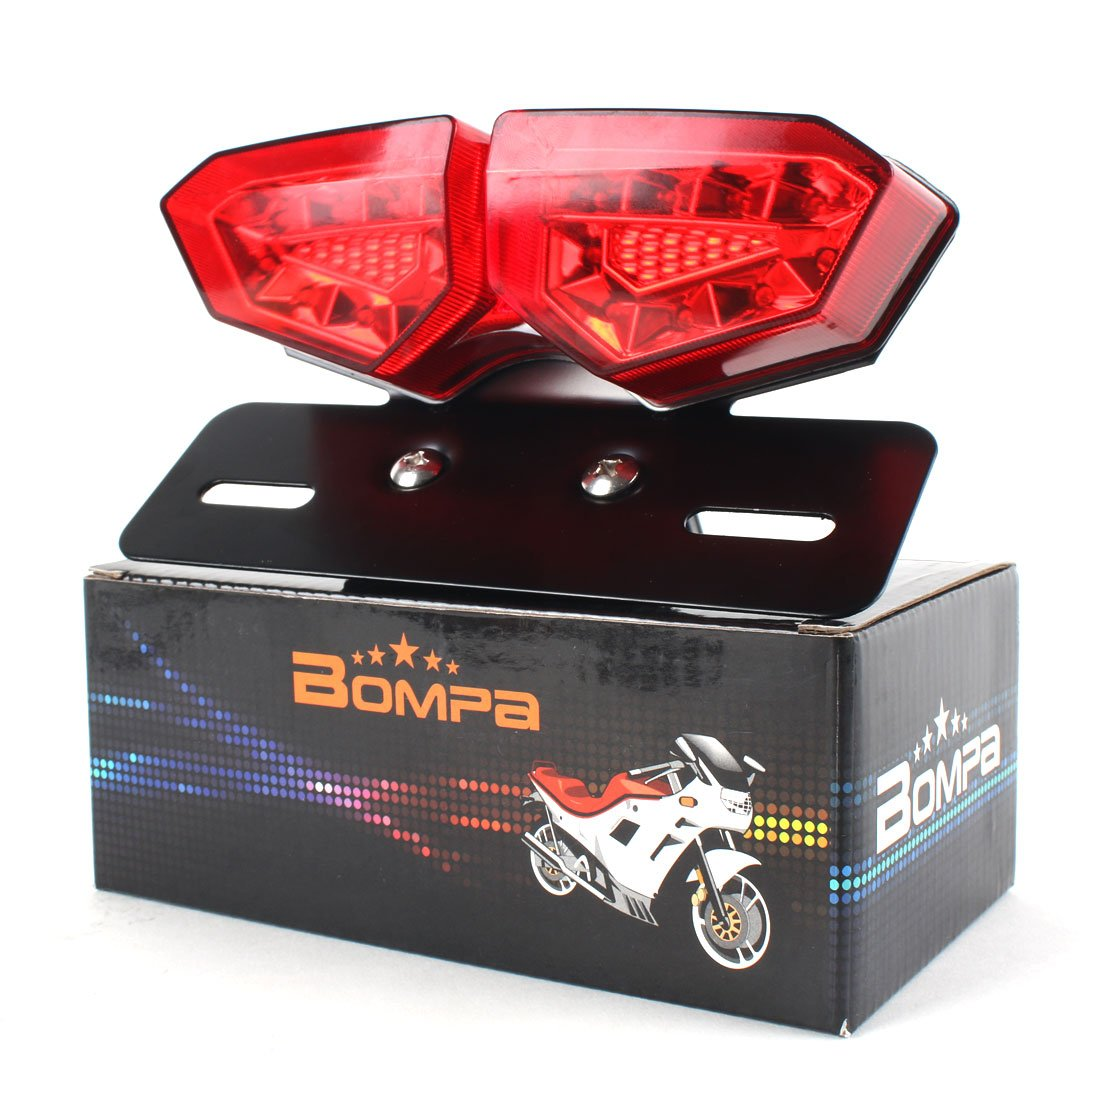 BOMPA Integrated LED Tail Brake Stop Turn Signal Light Smoke Lens with Red & Amber Light License Plate Bracket fit Most Motorcycles and Bikes by Bompa